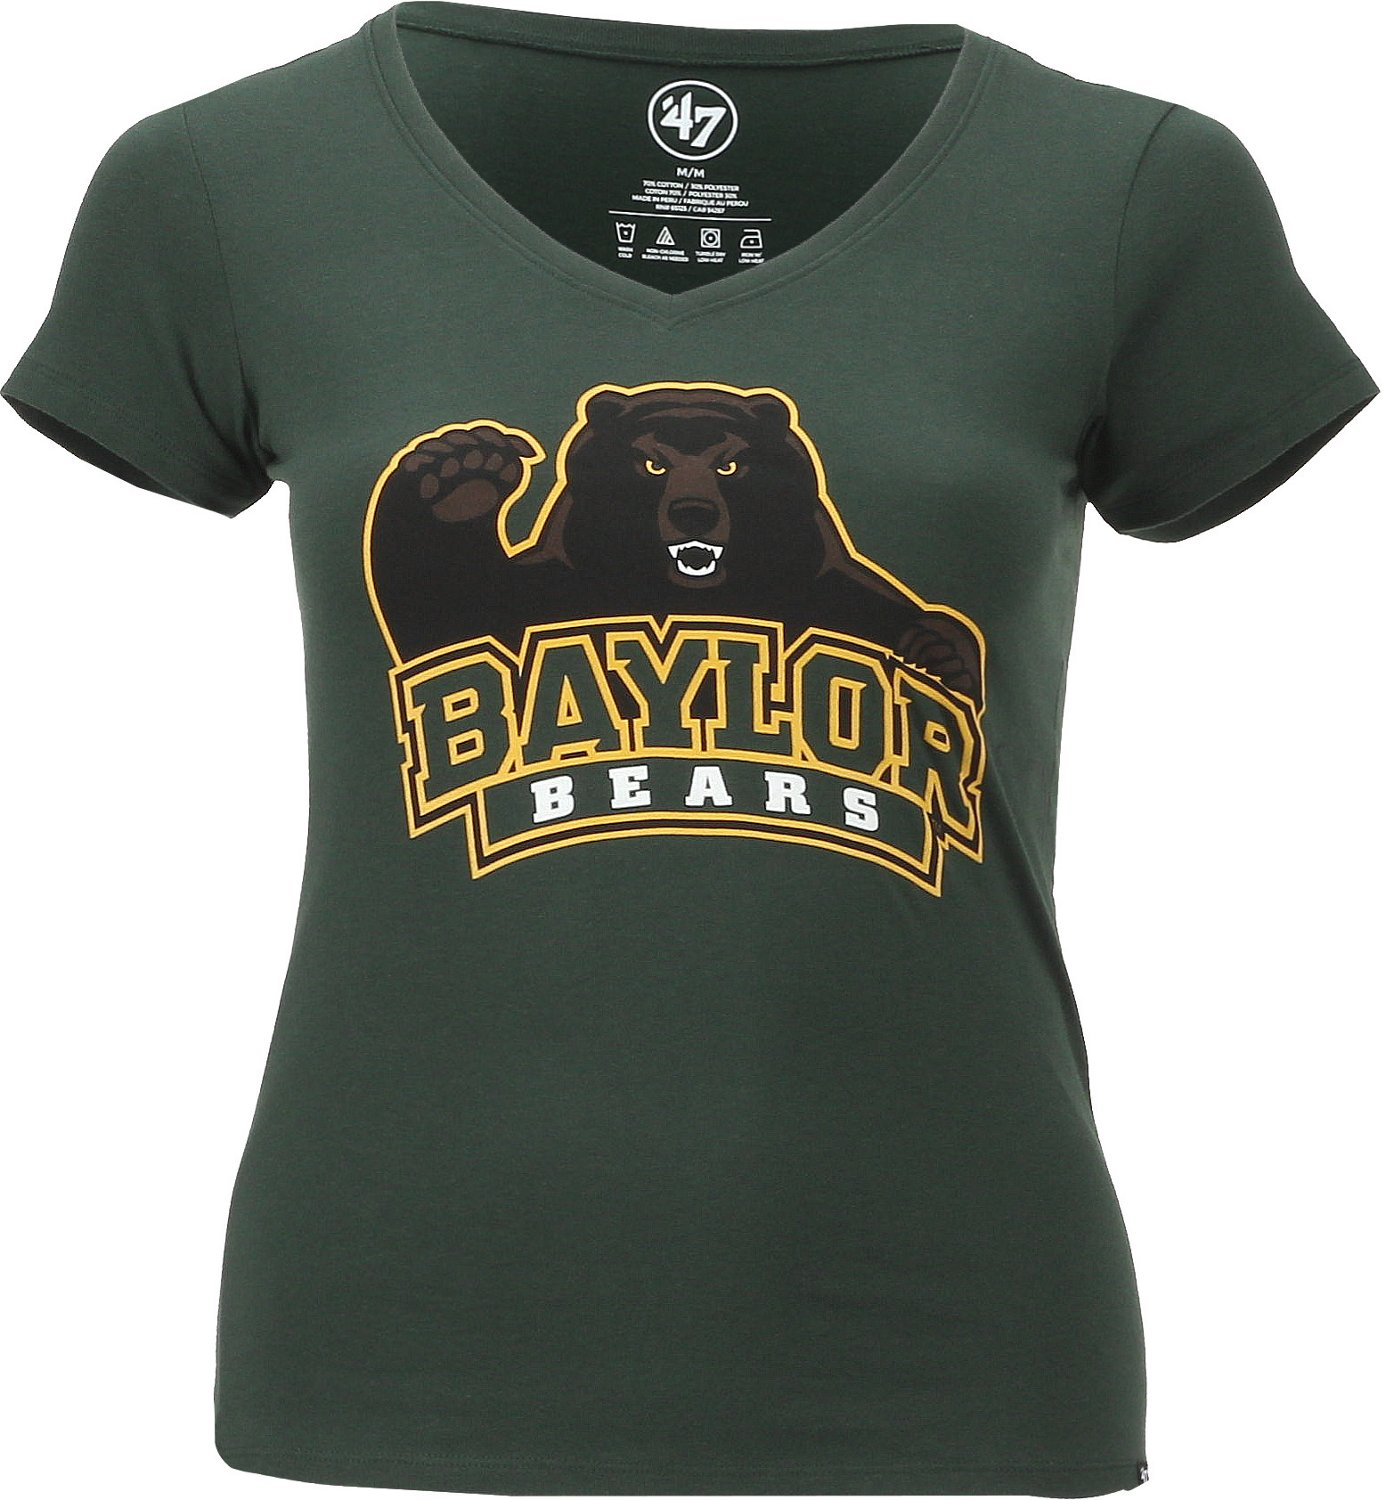 '47 Baylor University Women's Logo Splitter V-neck T-shirt